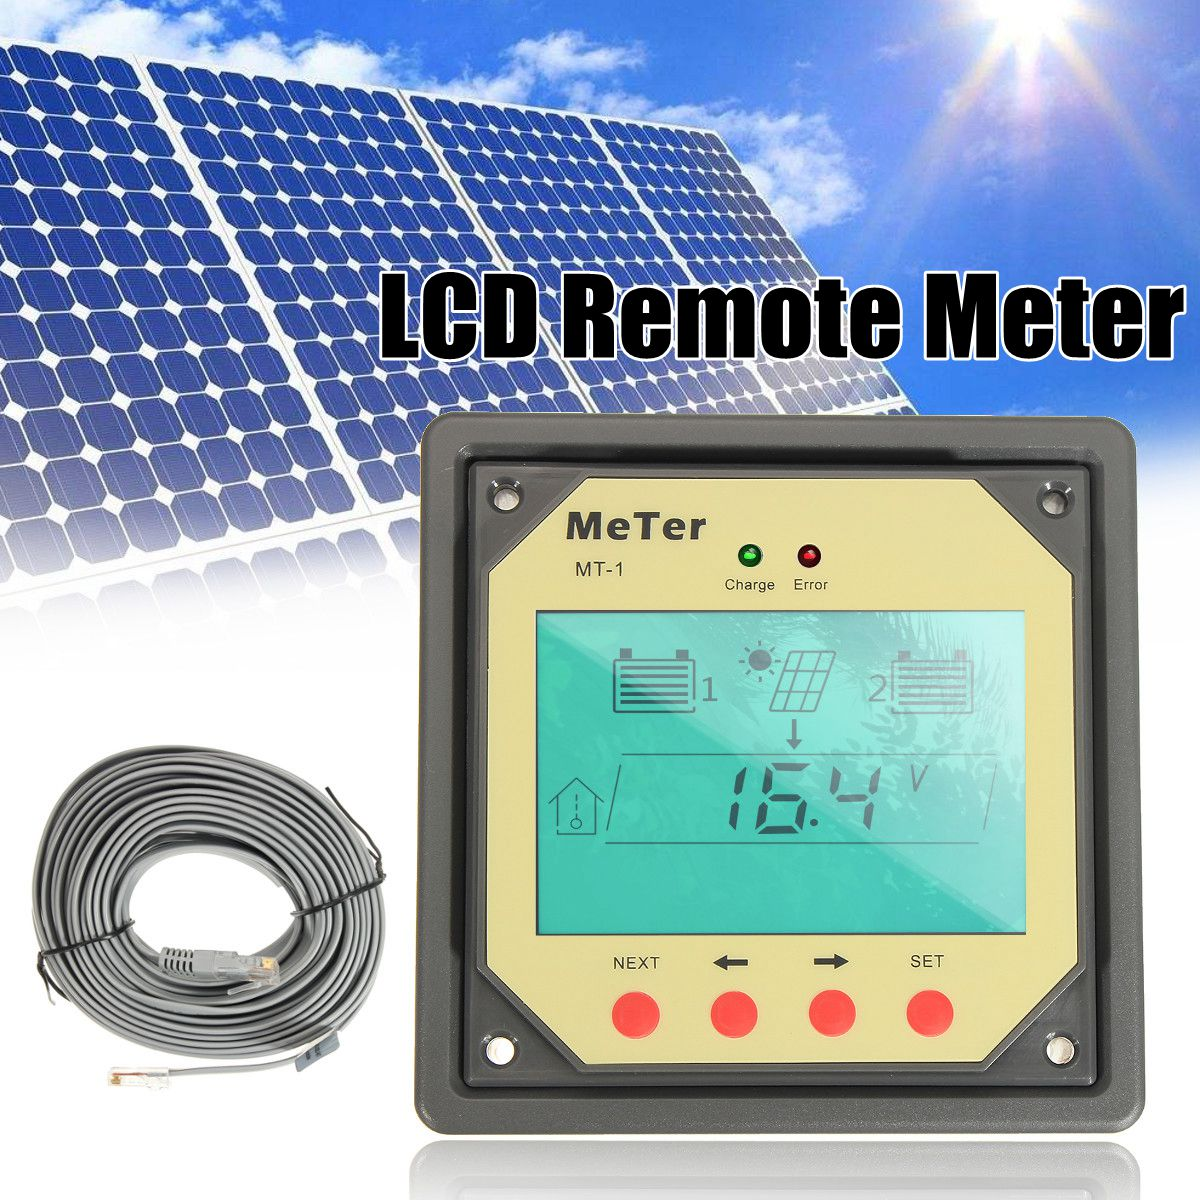 MT-1 Remote Meter LCD display Monitor for 10A 20A Dual Battery Solar Regulator Controllers remote meter lcd display mt1 for solar regulator for duo battery two battery